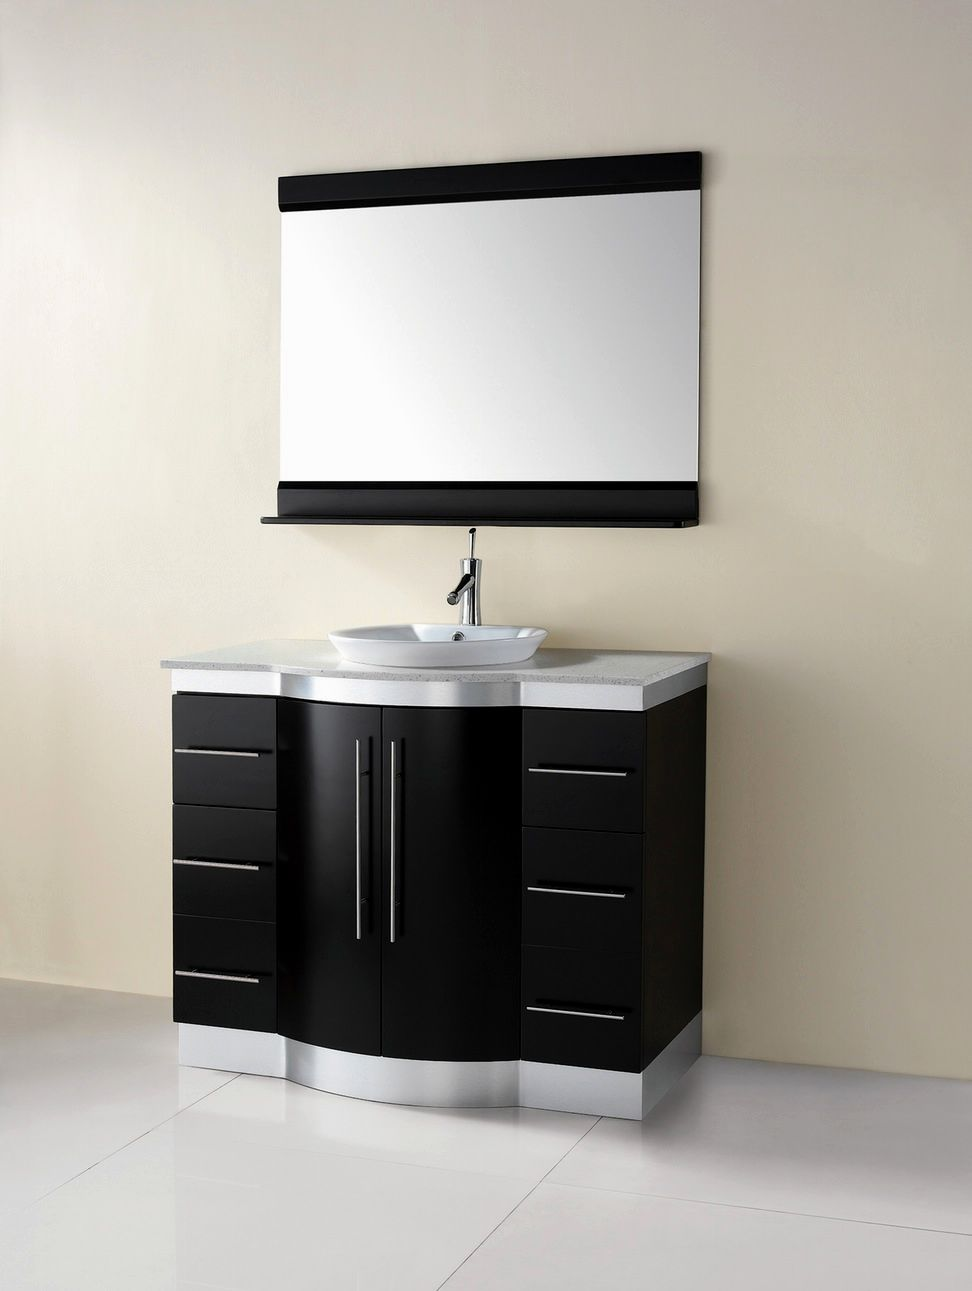 top bathroom storage furniture inspiration-Fancy Bathroom Storage Furniture Gallery